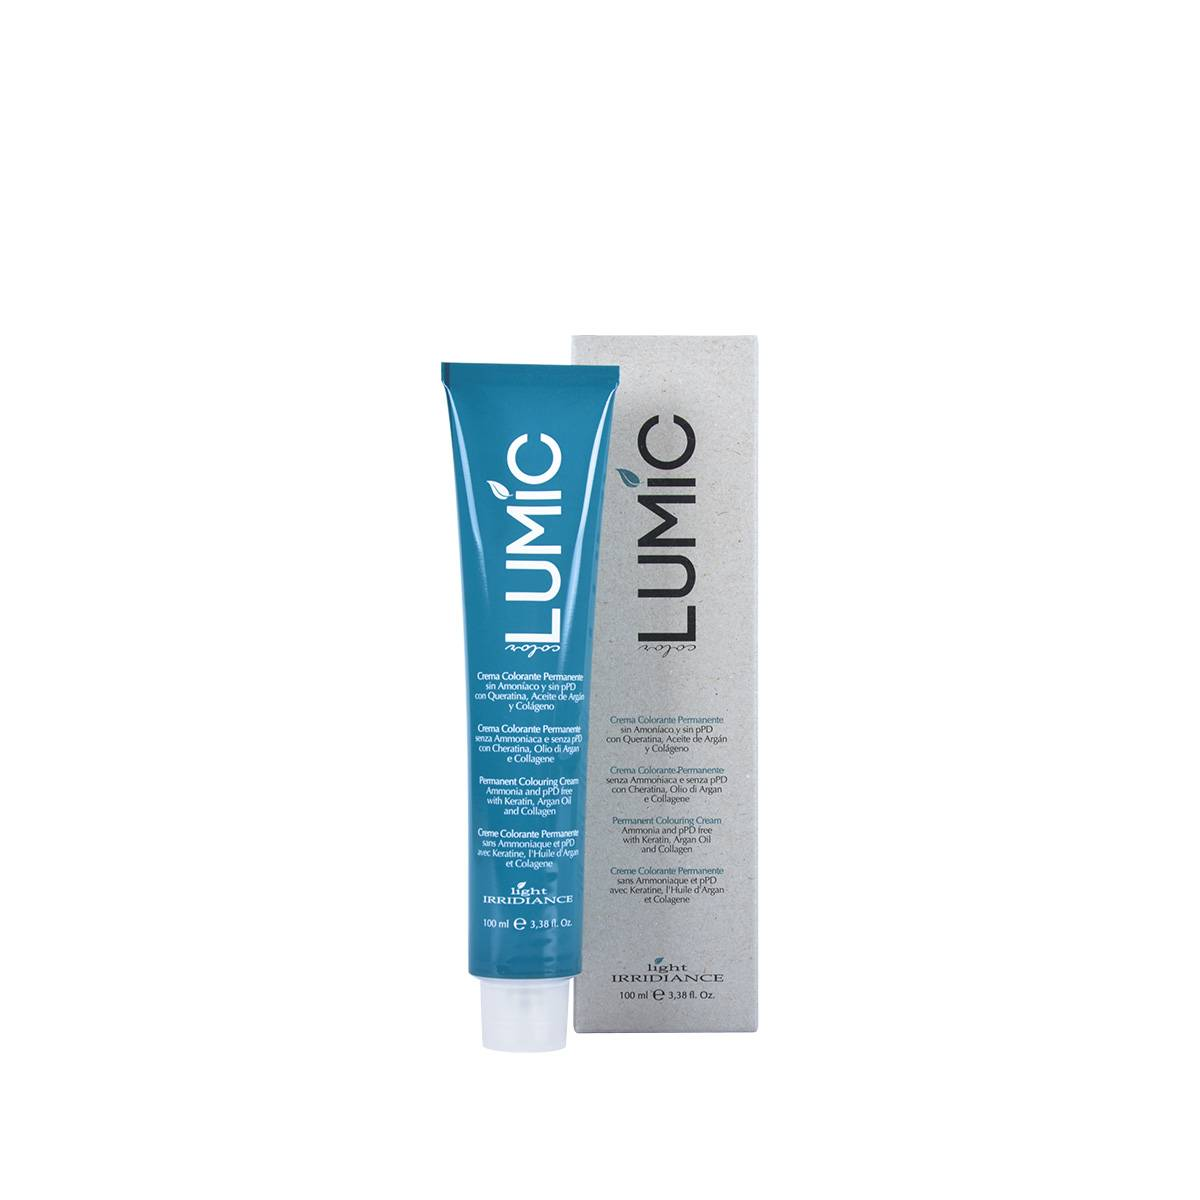 Lumic Crema Colore 100ml Superschiarente Irise'